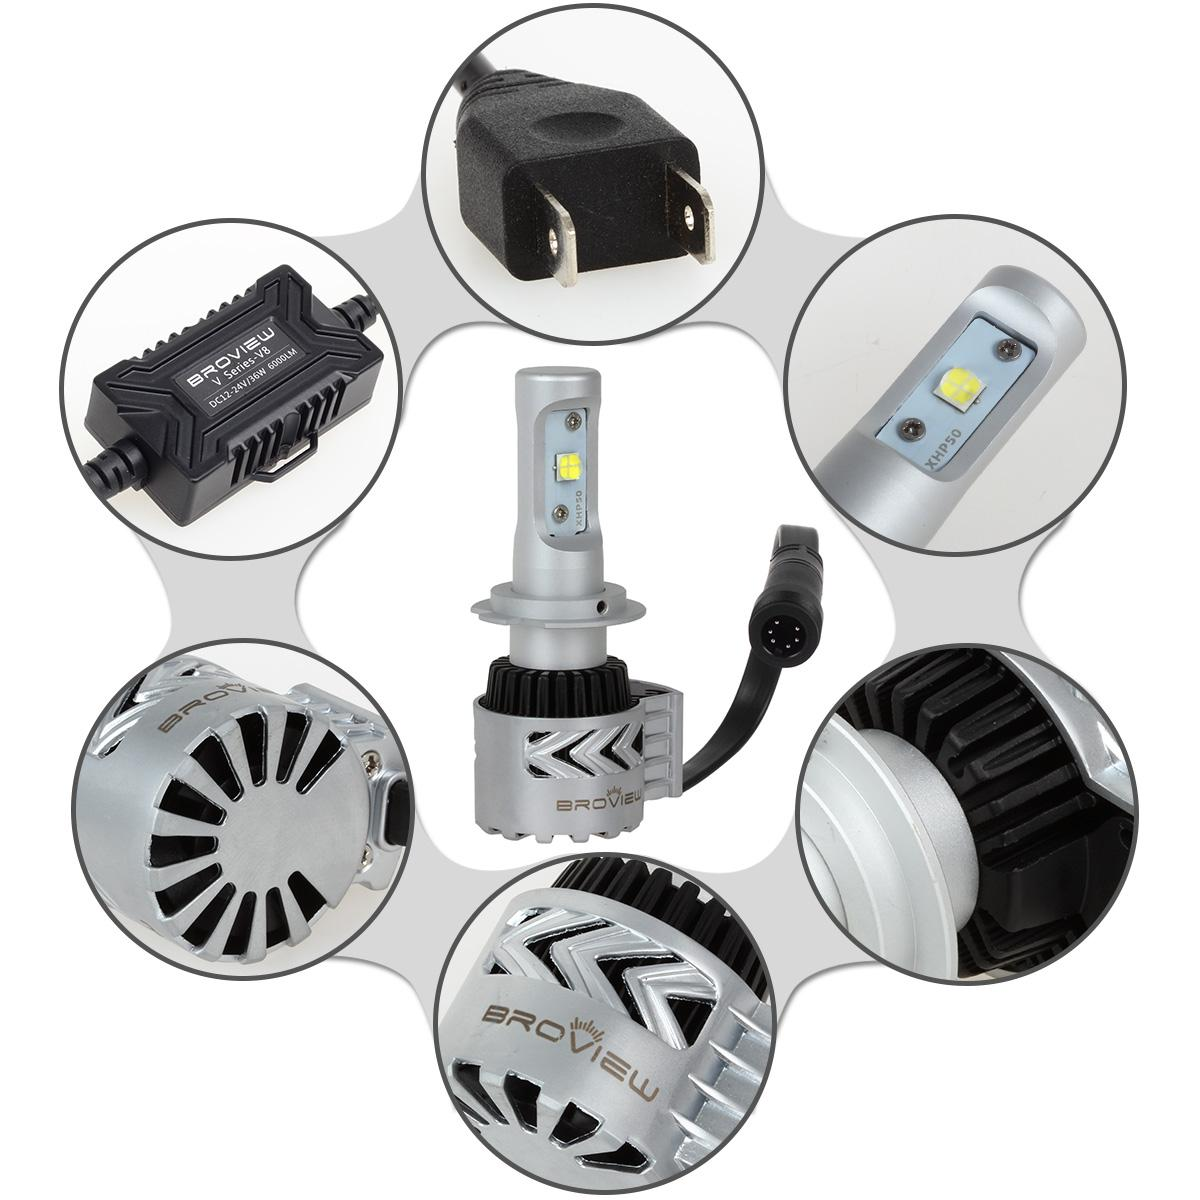 broview v8 h7 led headlight 12000lm conversion kit 72w cree 6500k white bulb. Black Bedroom Furniture Sets. Home Design Ideas